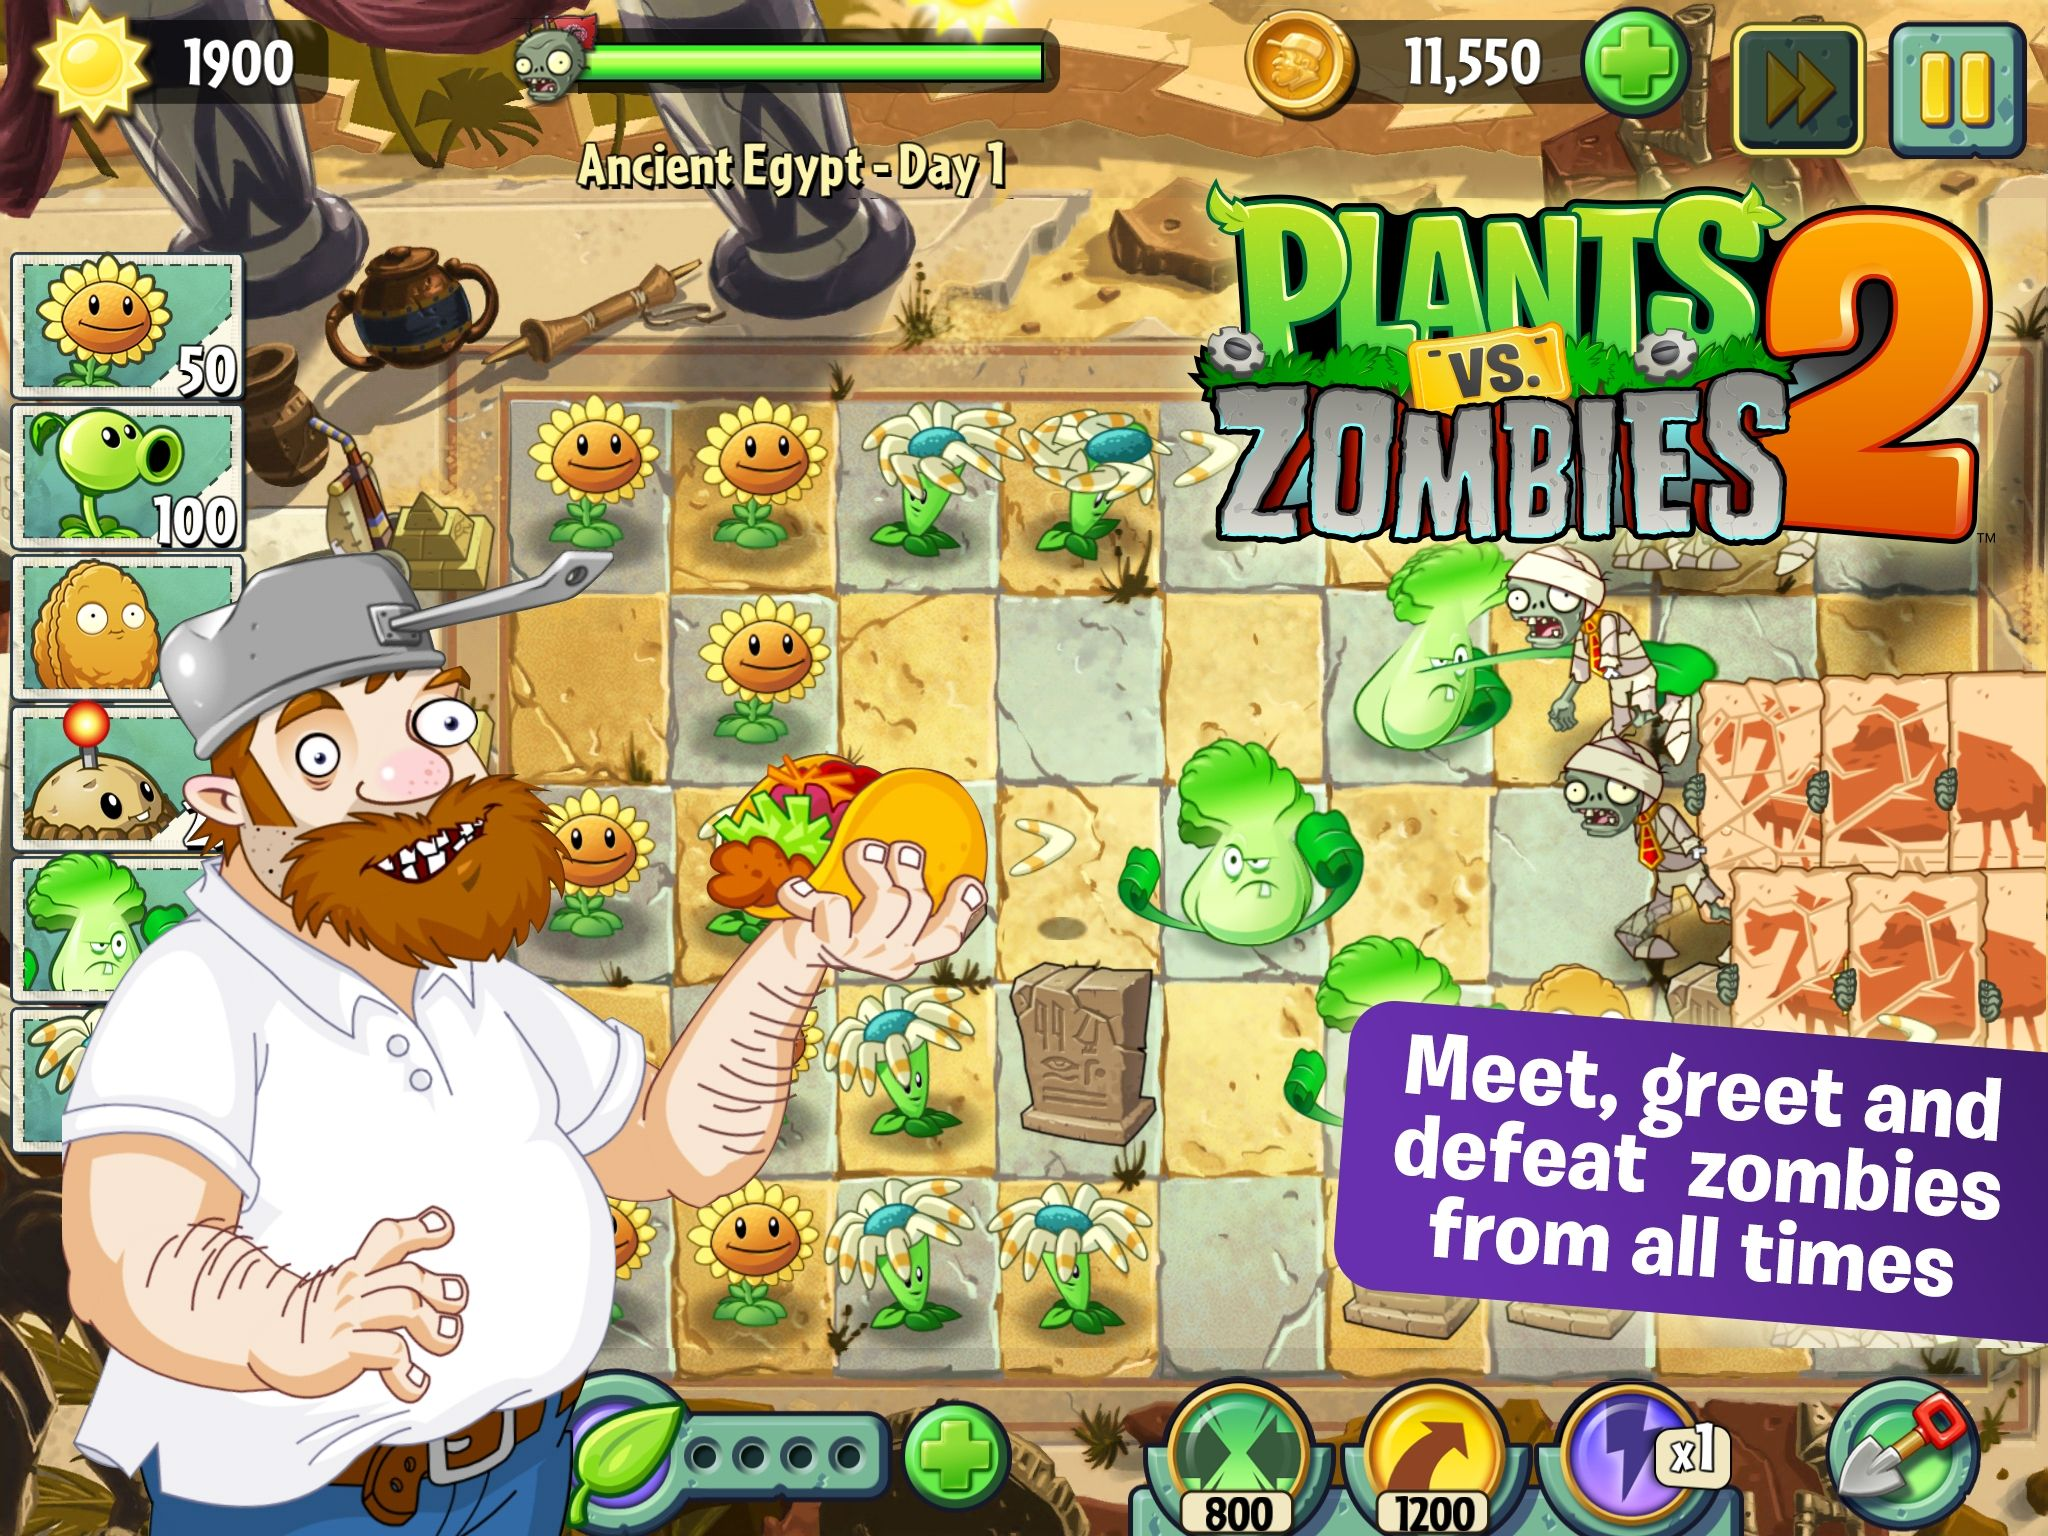 free plants vs zombies download for windows 7